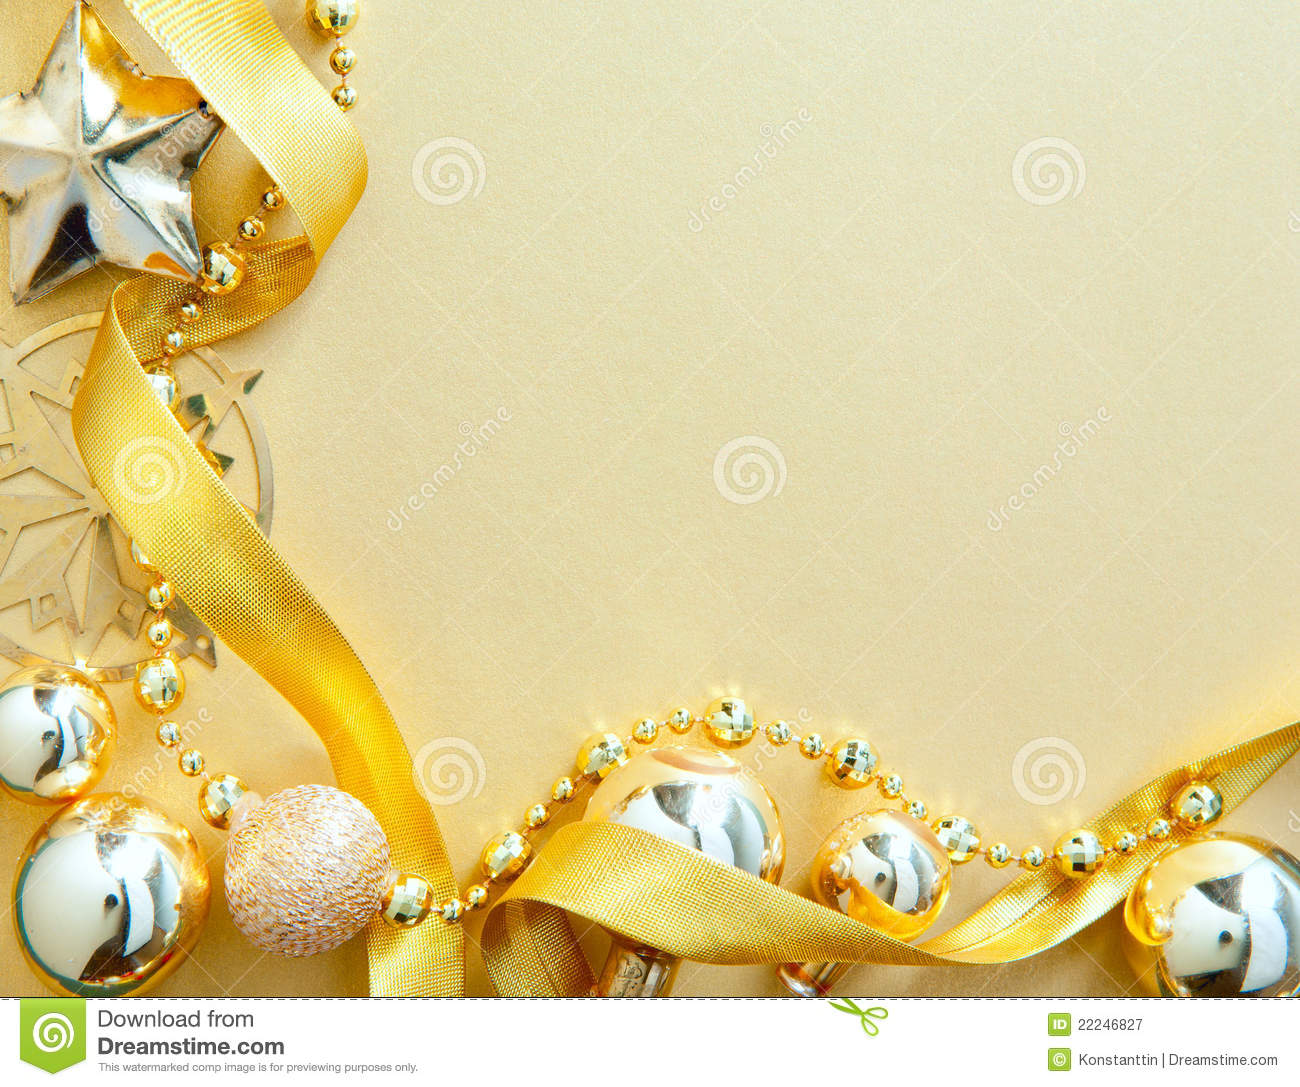 Christmas Greeting Card With Golden Tree Decor Stock Image - Image ...